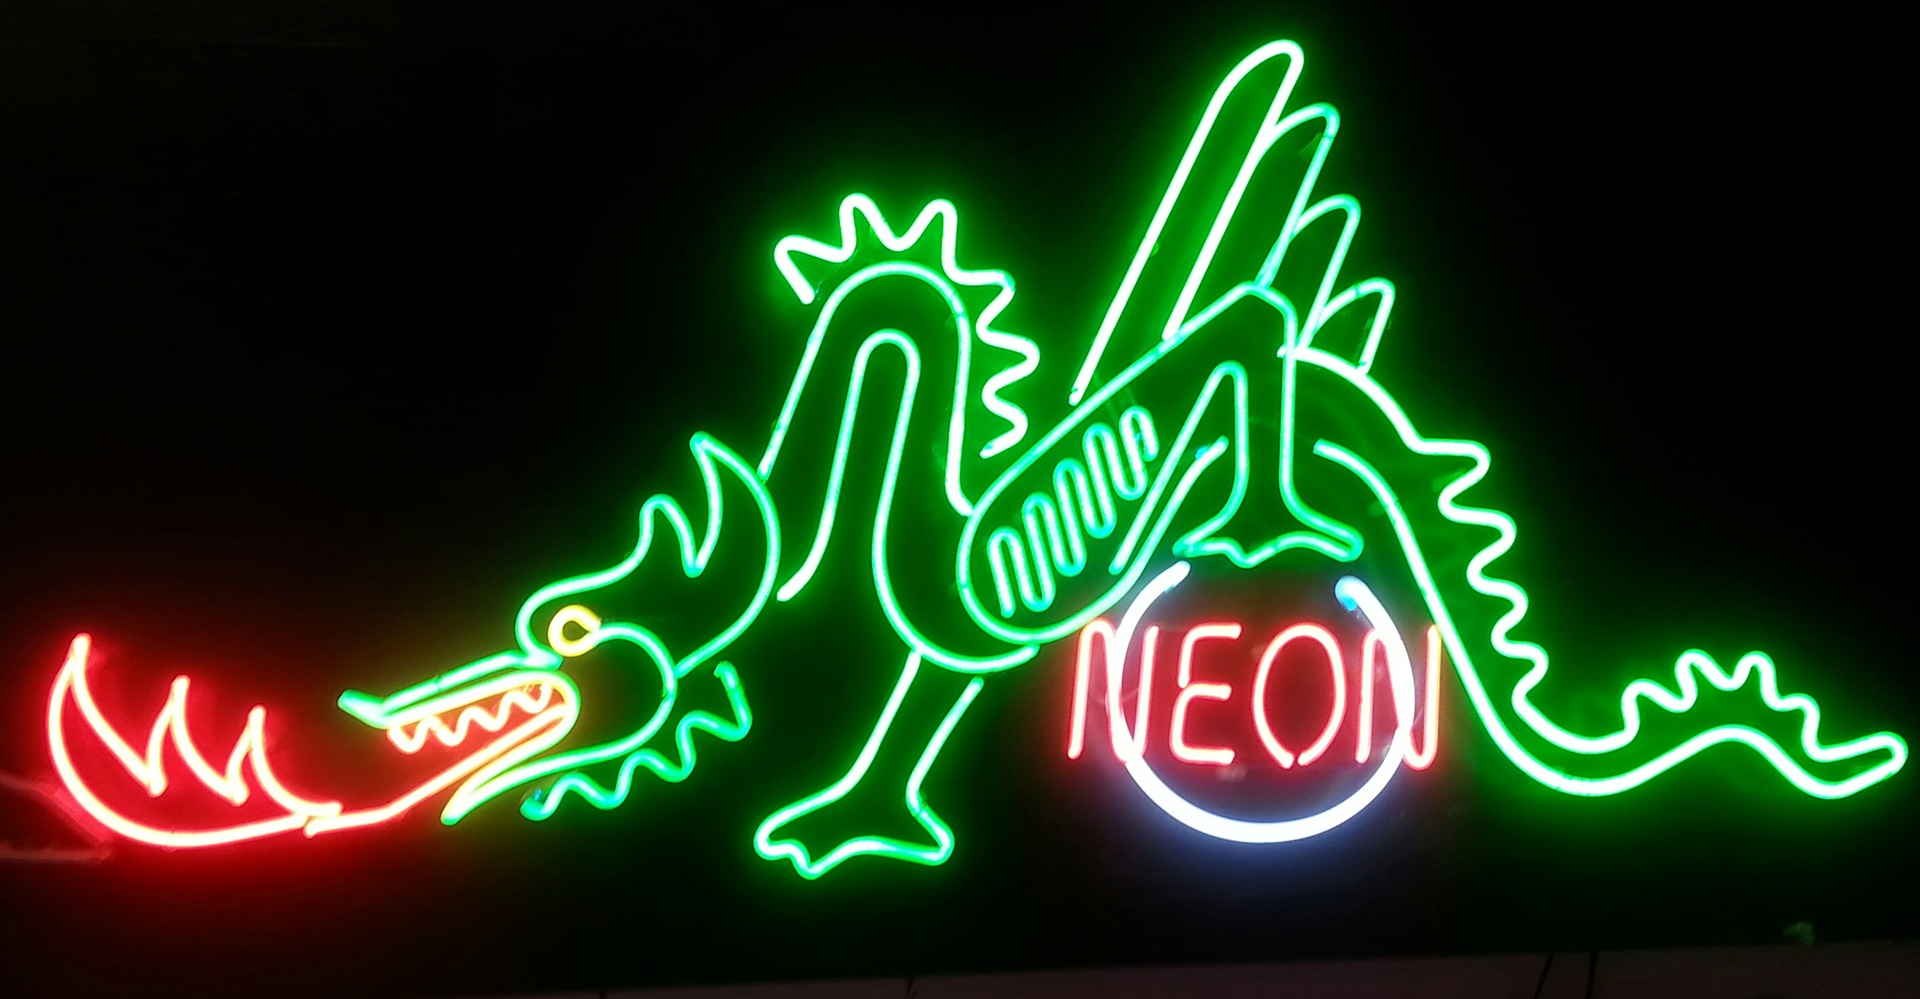 NEON 2000 (PVT) LTD-neon 2000 led light board shop-neon ...